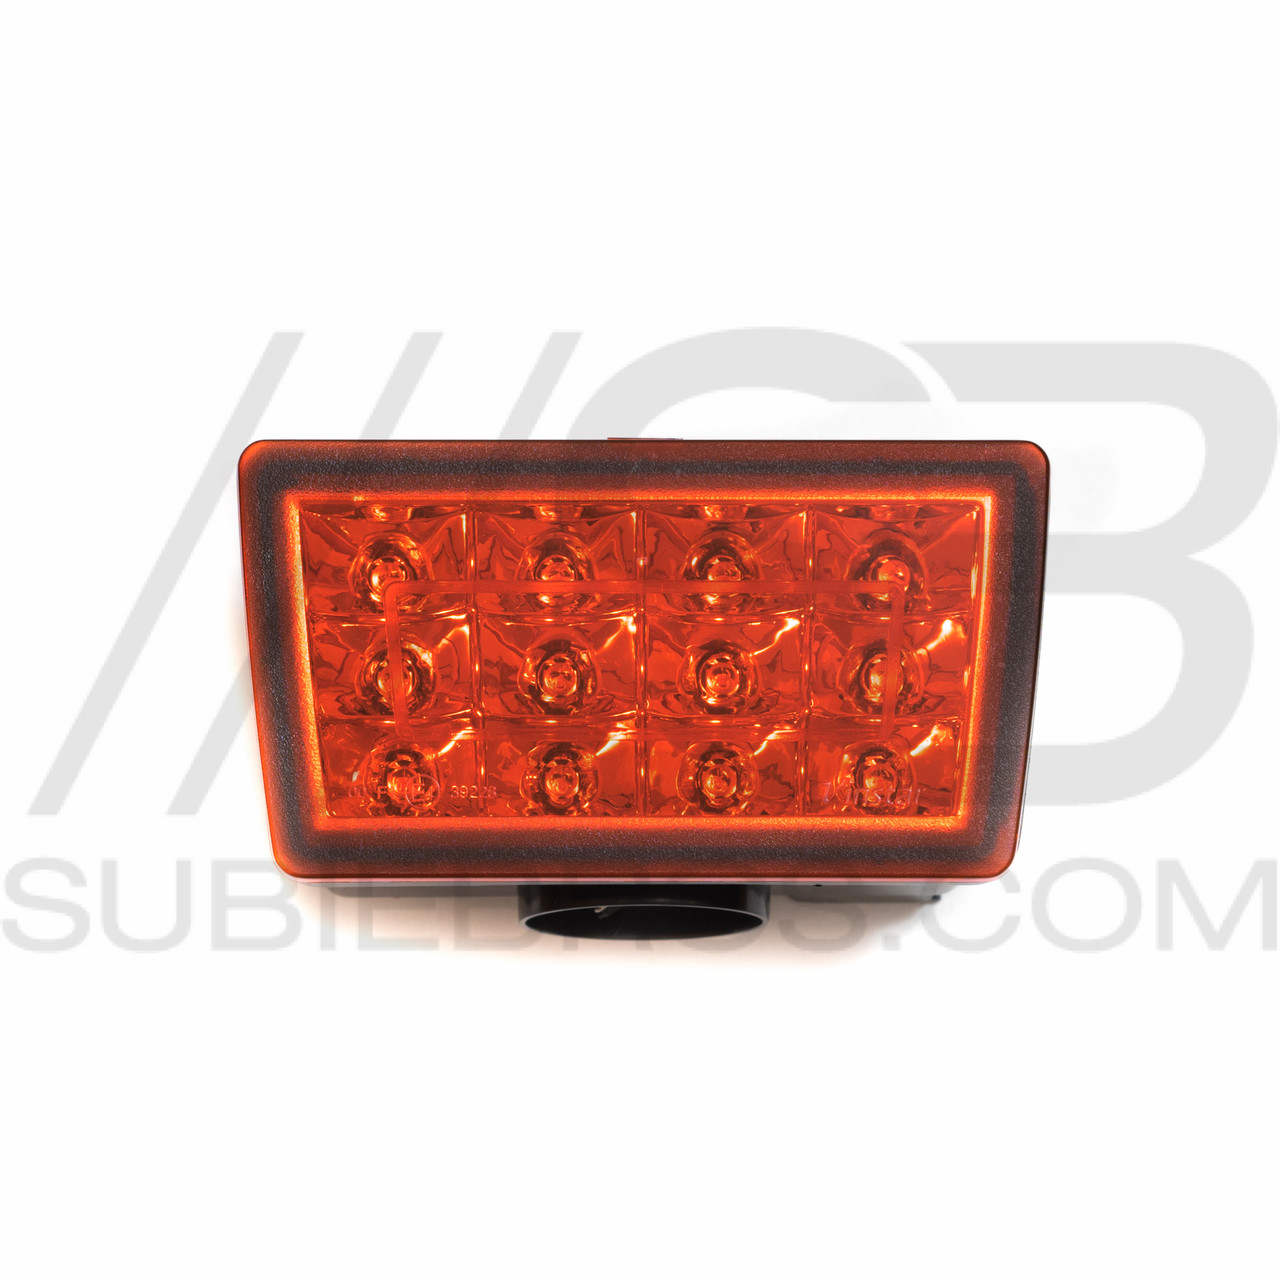 F1 Style LED Rear Fog Light (Red, Clear/Red, Smoked, Matte Black) on